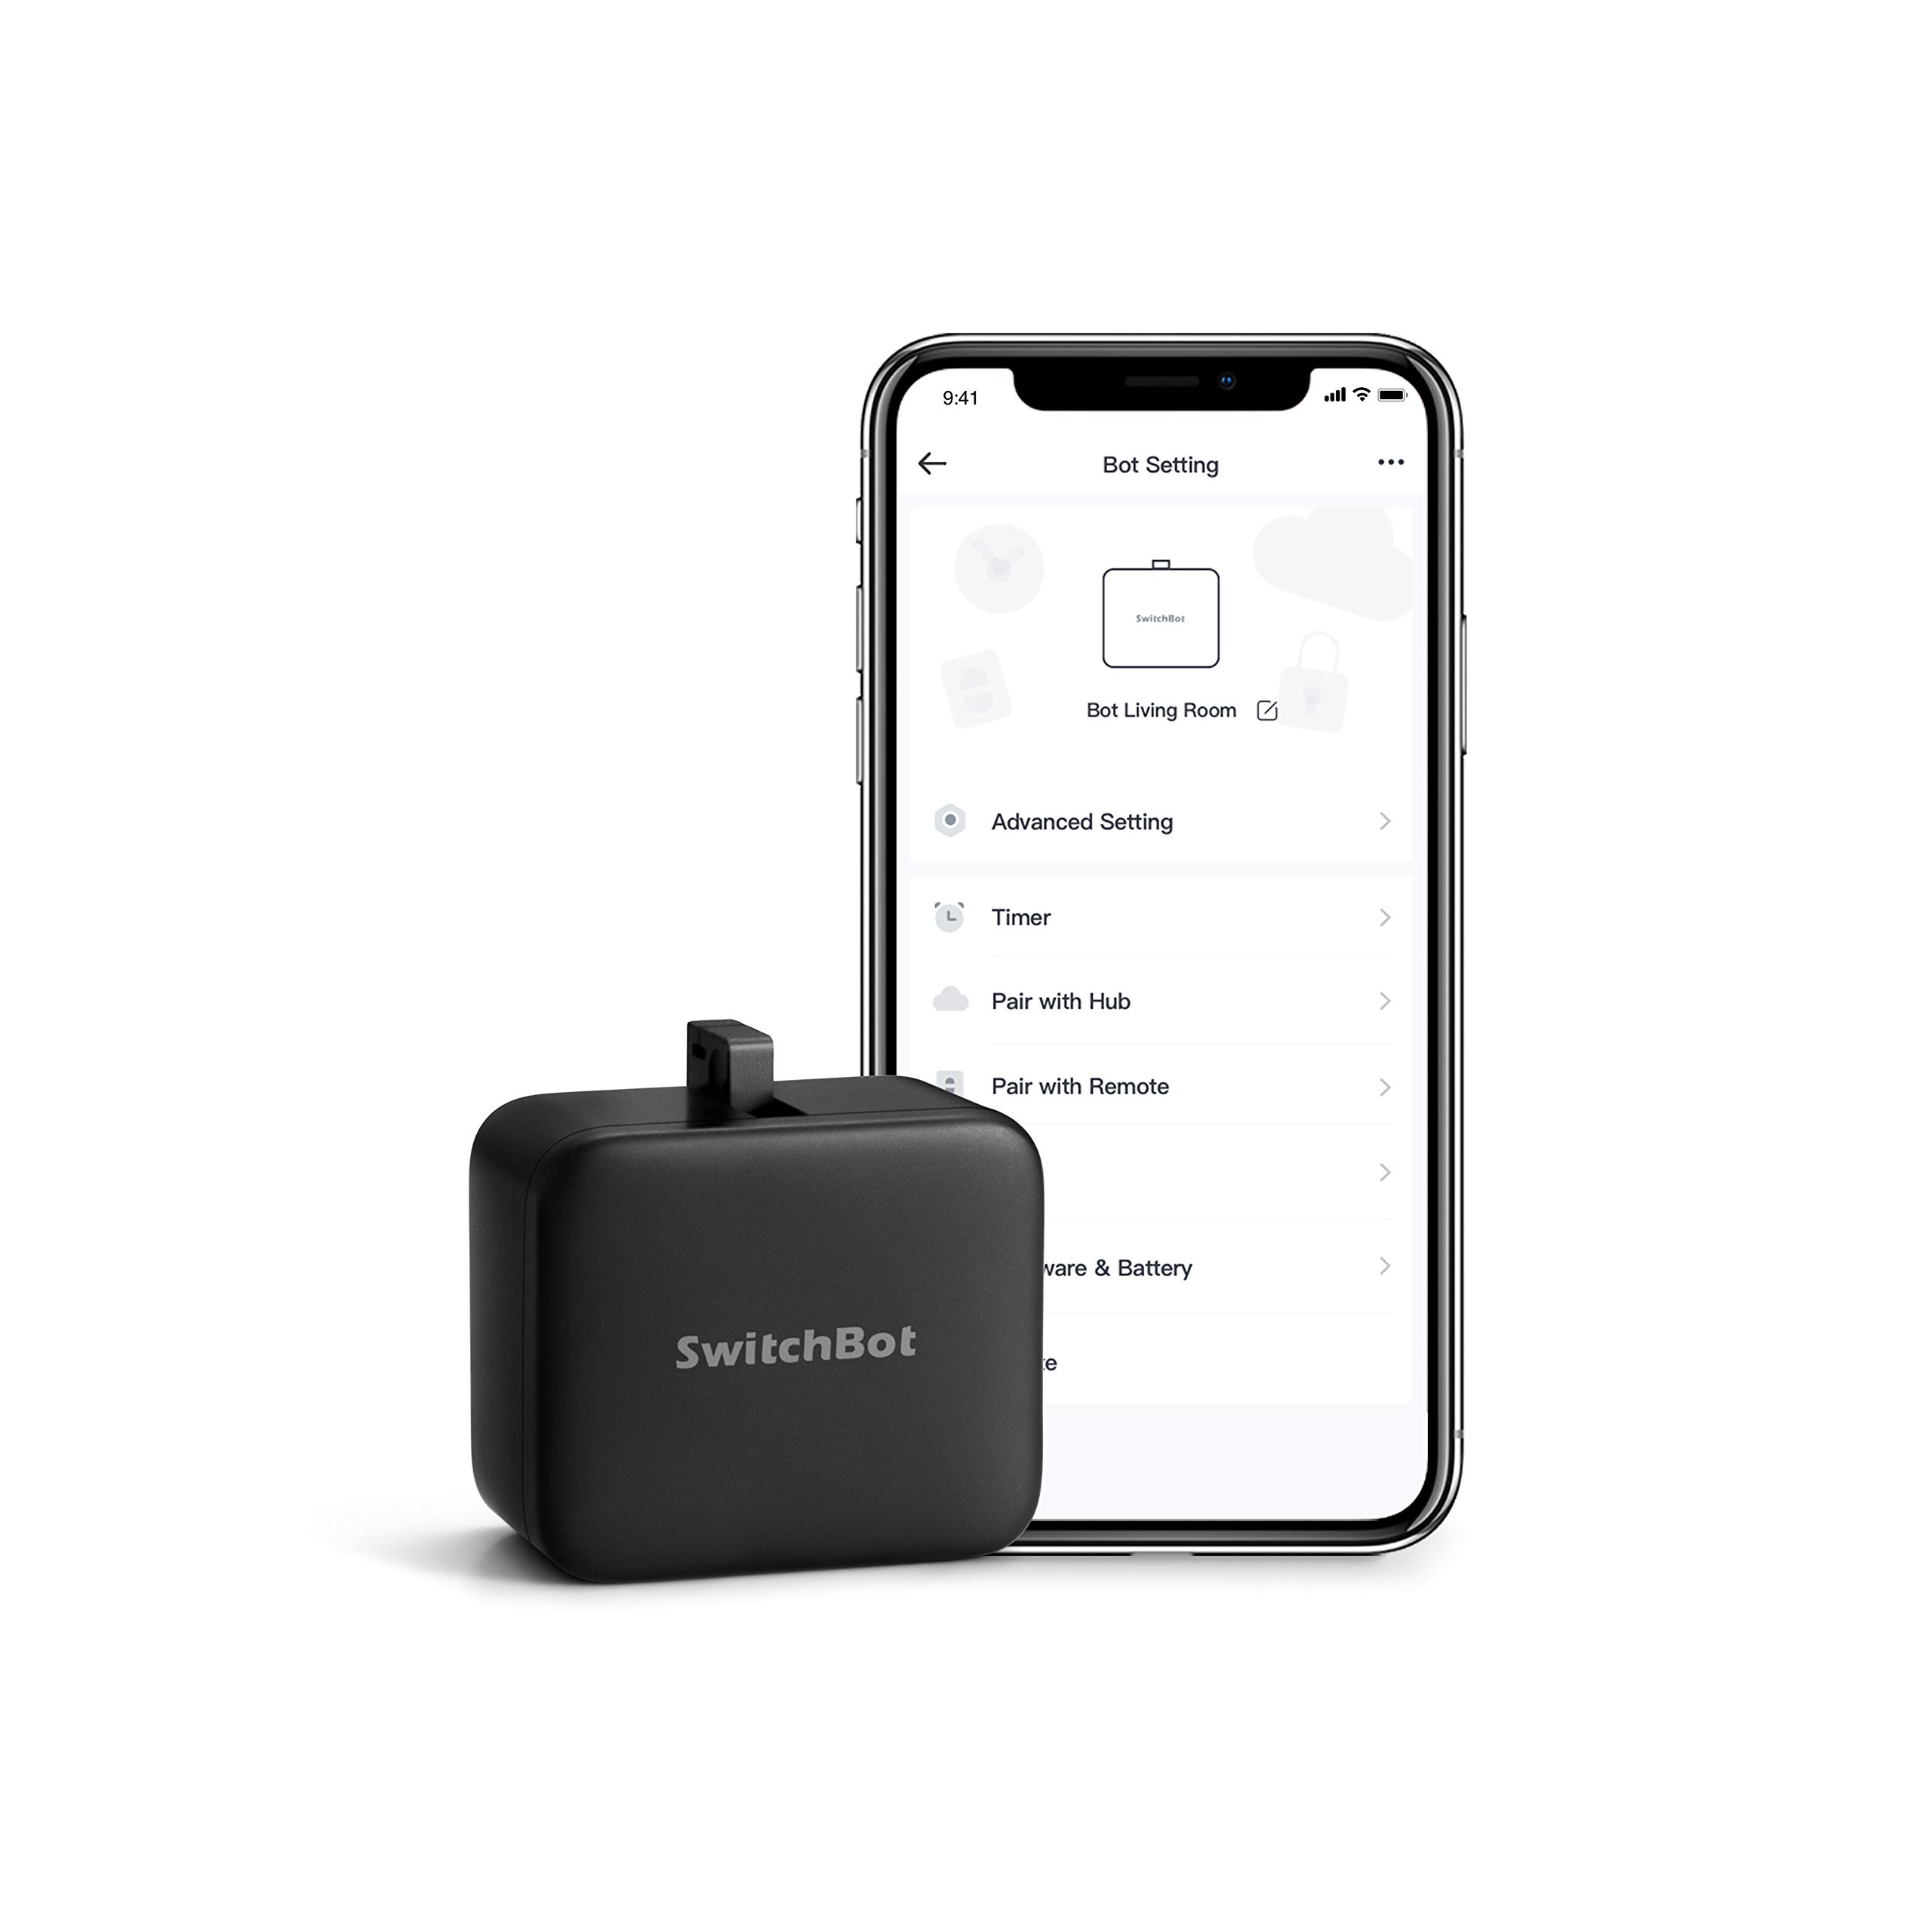 SwitchBot Smart Switch Button Pusher - No Wiring, Wireless App or Timer Control, Add SwitchBot Hub Compatible with Alexa, Google Home, HomePod and IFTTT